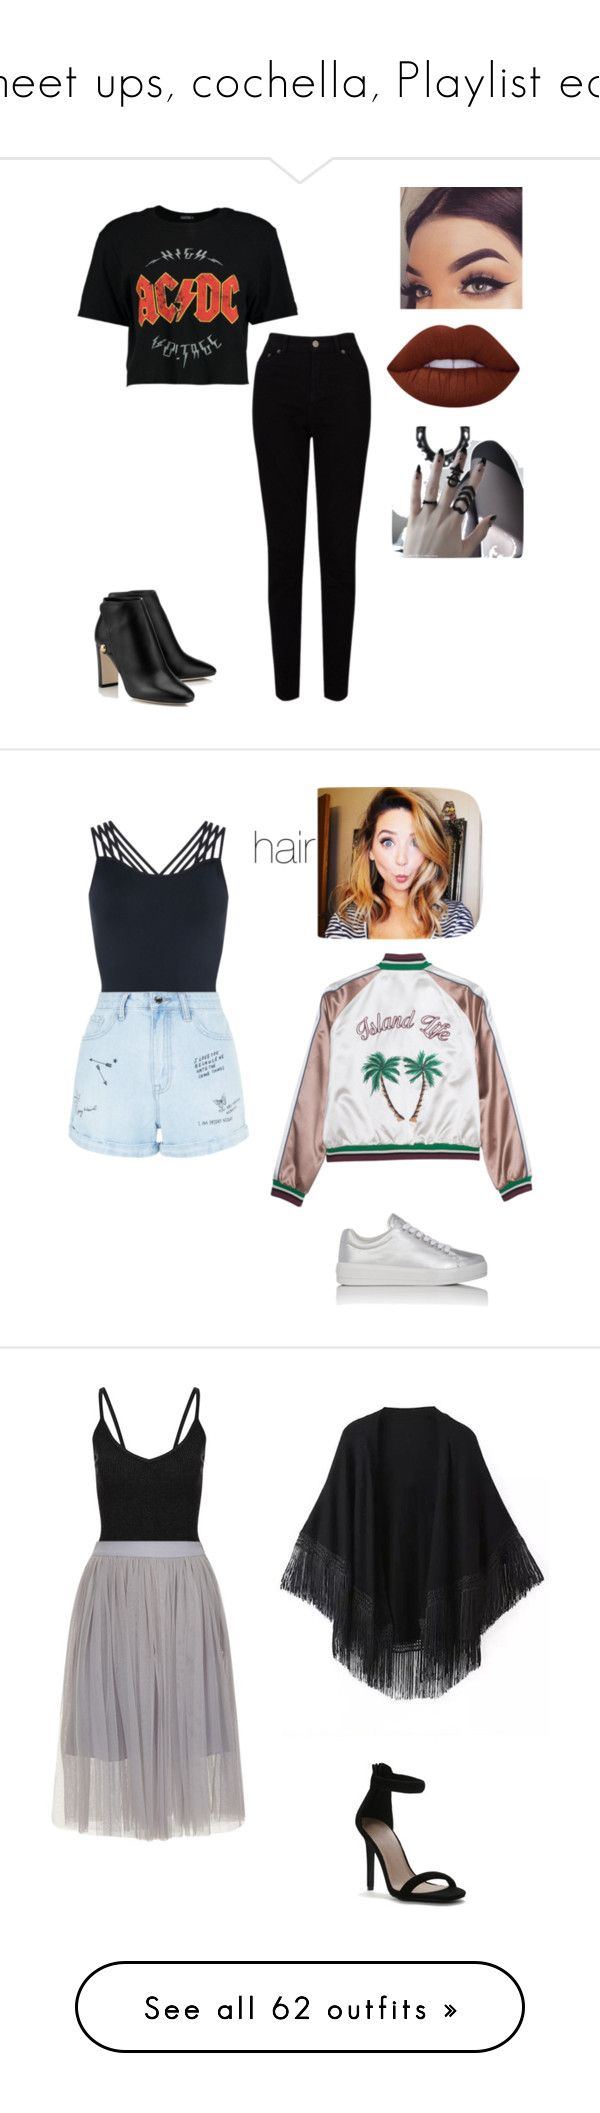 """meet ups, cochella, Playlist ect"" by cupcakebluestar ❤ liked on Polyvore featuring Boohoo, EAST, Lime Crime, Prada Sport, Pepper & Mayne, New Look, Relaxfeel, Topshop, Borghese and Carvela"